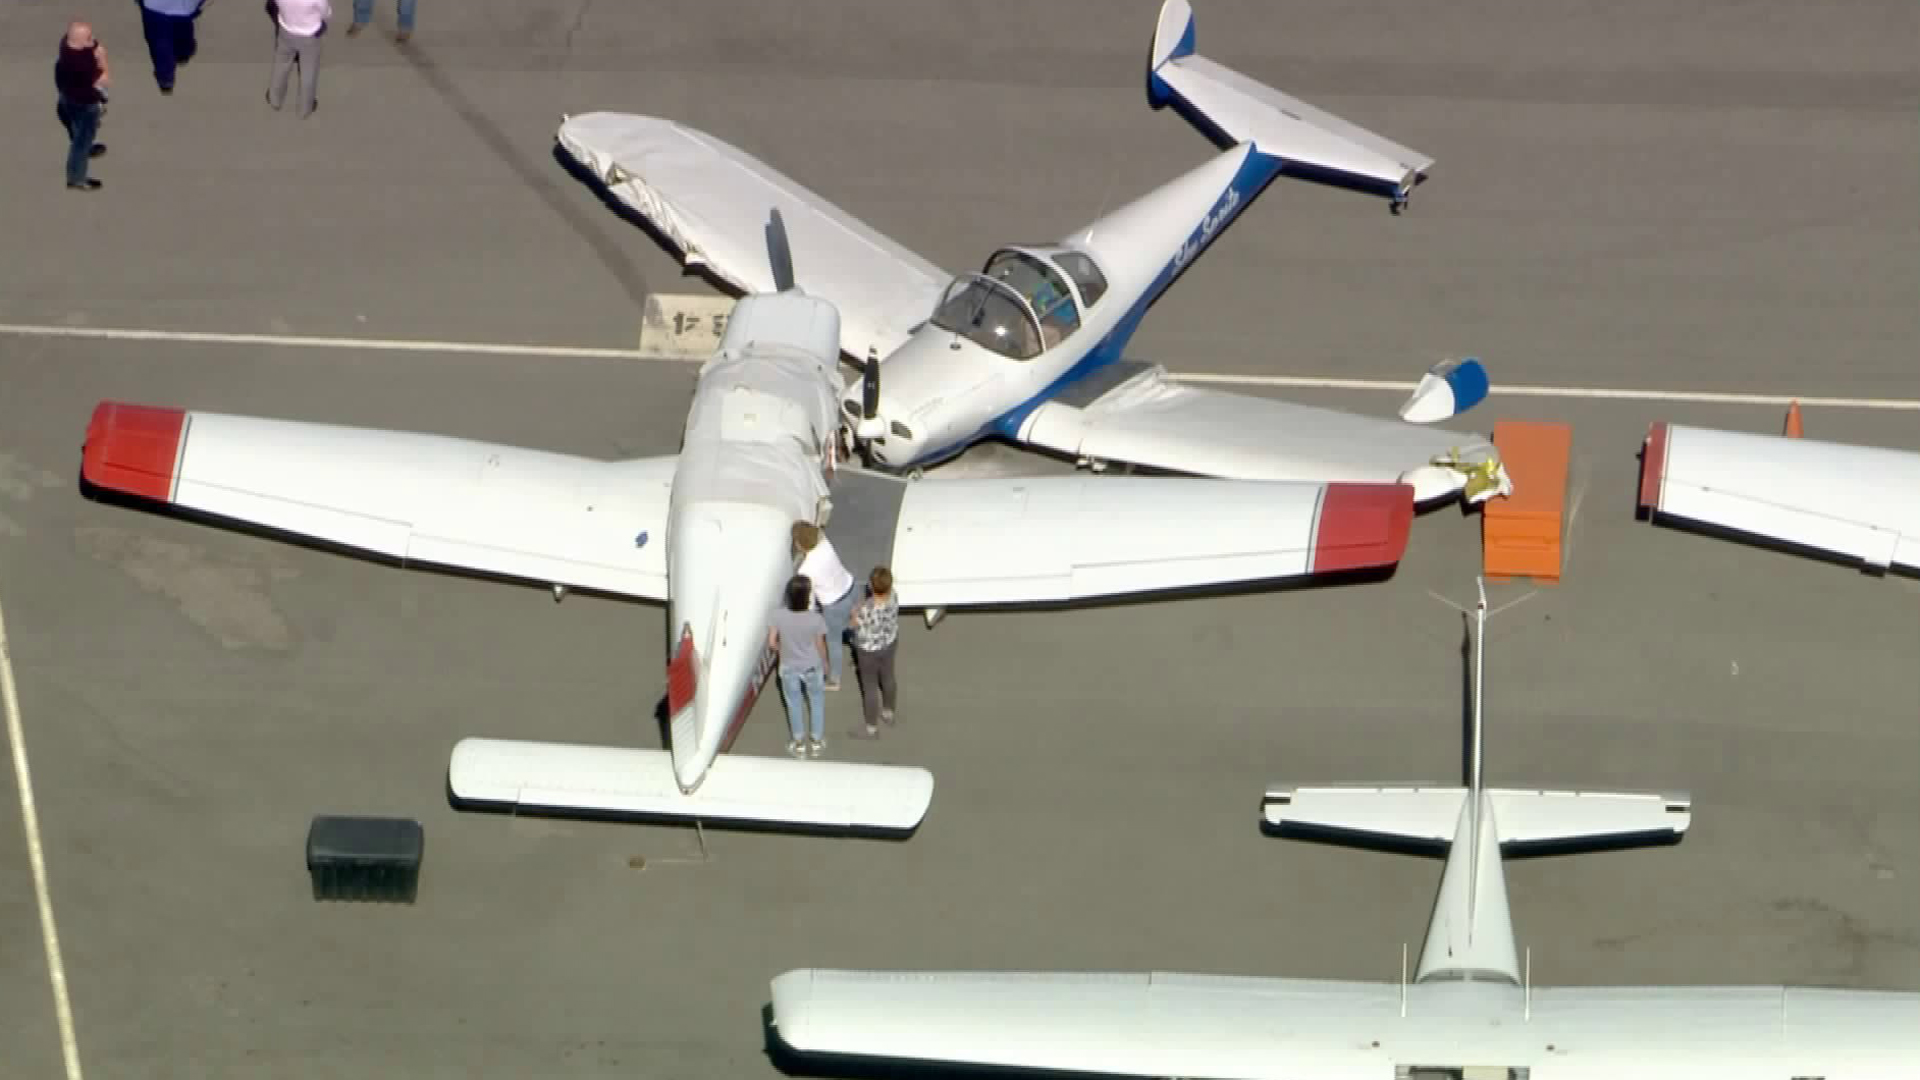 Two planes were damaged after some sort of mishap at the Torrance Airport on Feb. 25, 2020. (KTLA)